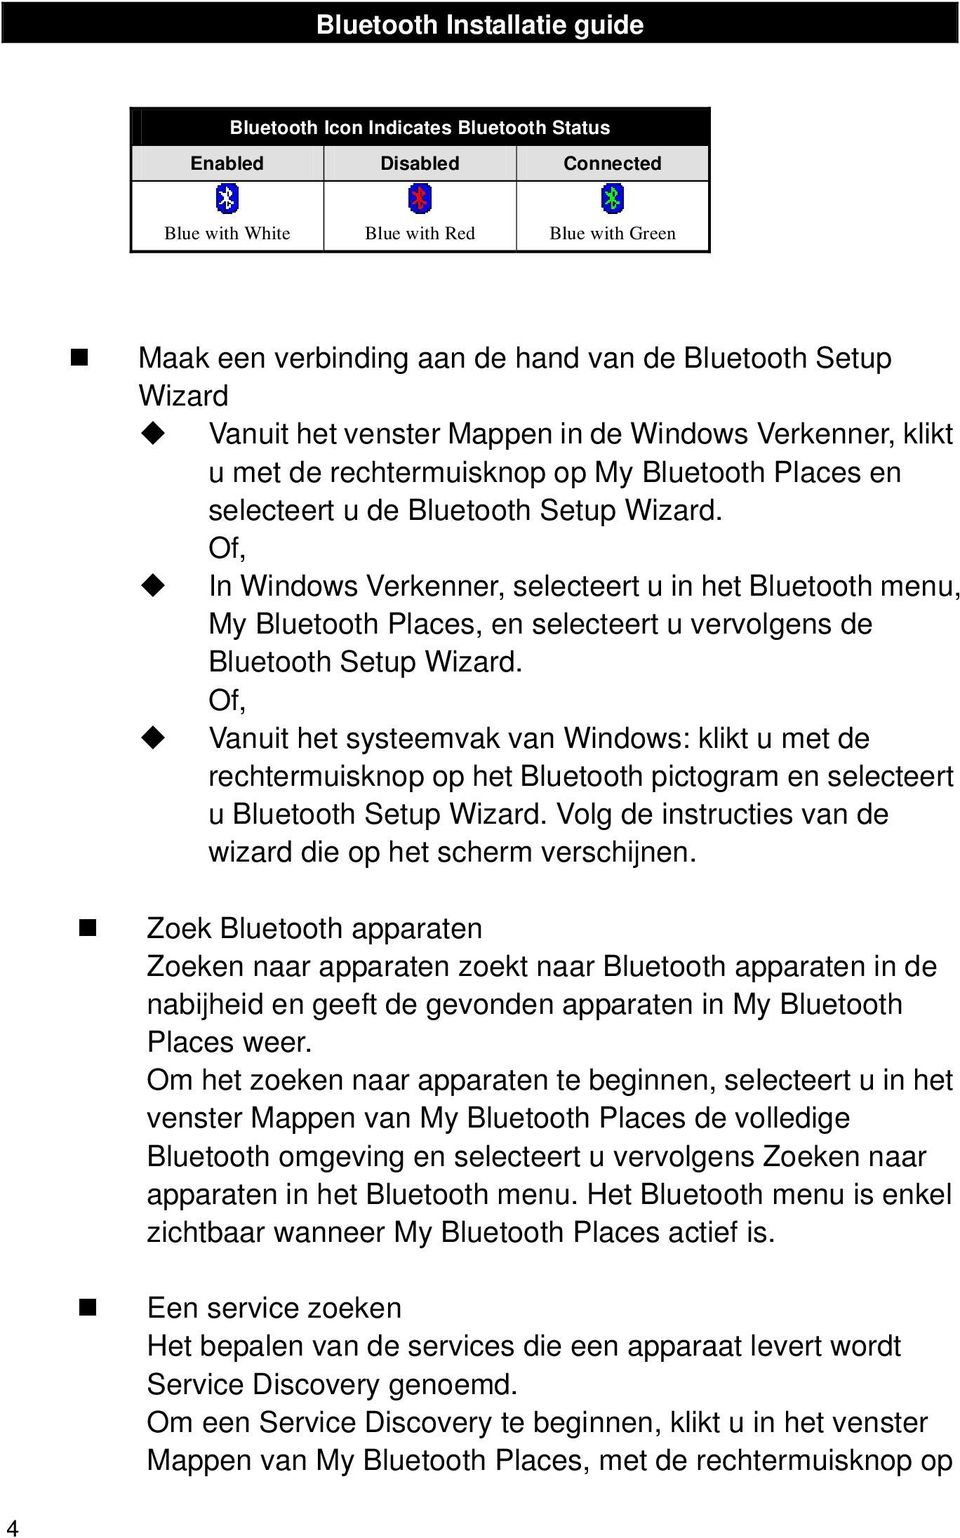 Of, In Windows Verkenner, selecteert u in het Bluetooth menu, My Bluetooth Places, en selecteert u vervolgens de Bluetooth Setup Wizard.